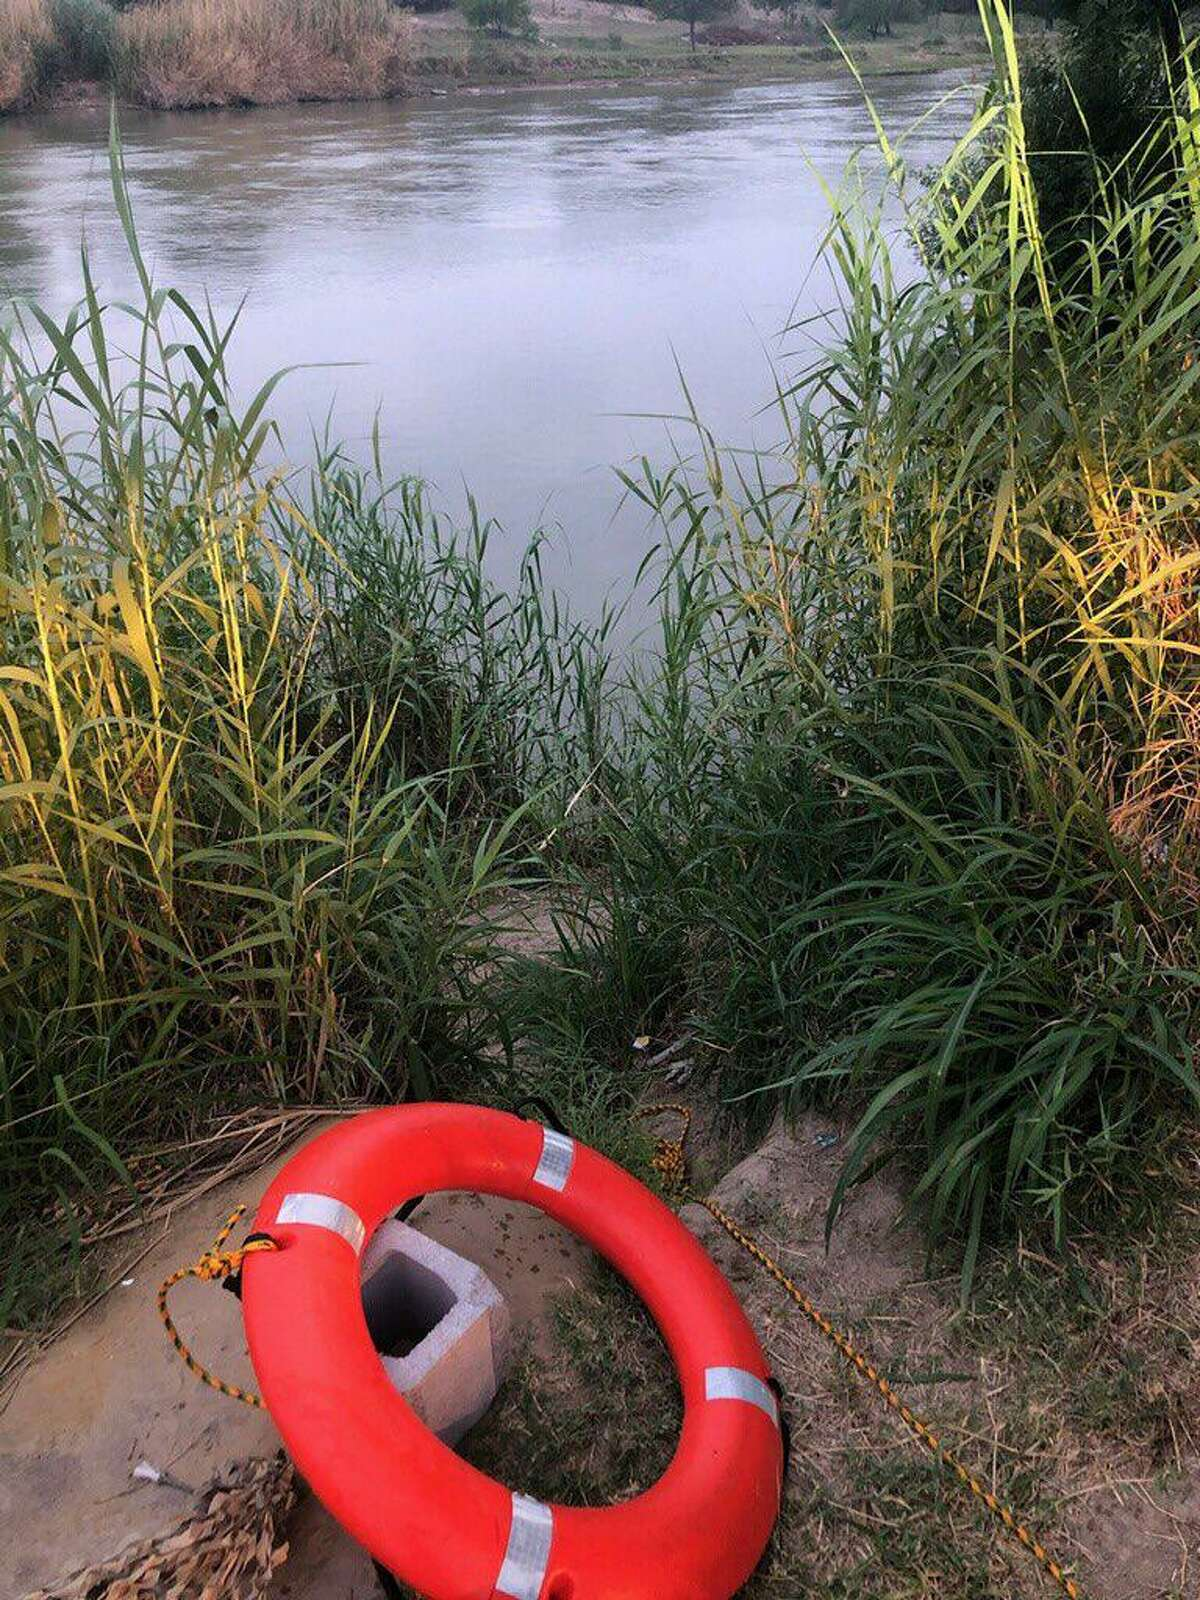 U.S. Army soldiers and U.S. Border Patrol agents rescued two migrants from drowning at the Rio Grande around this area by Chacon Creek.